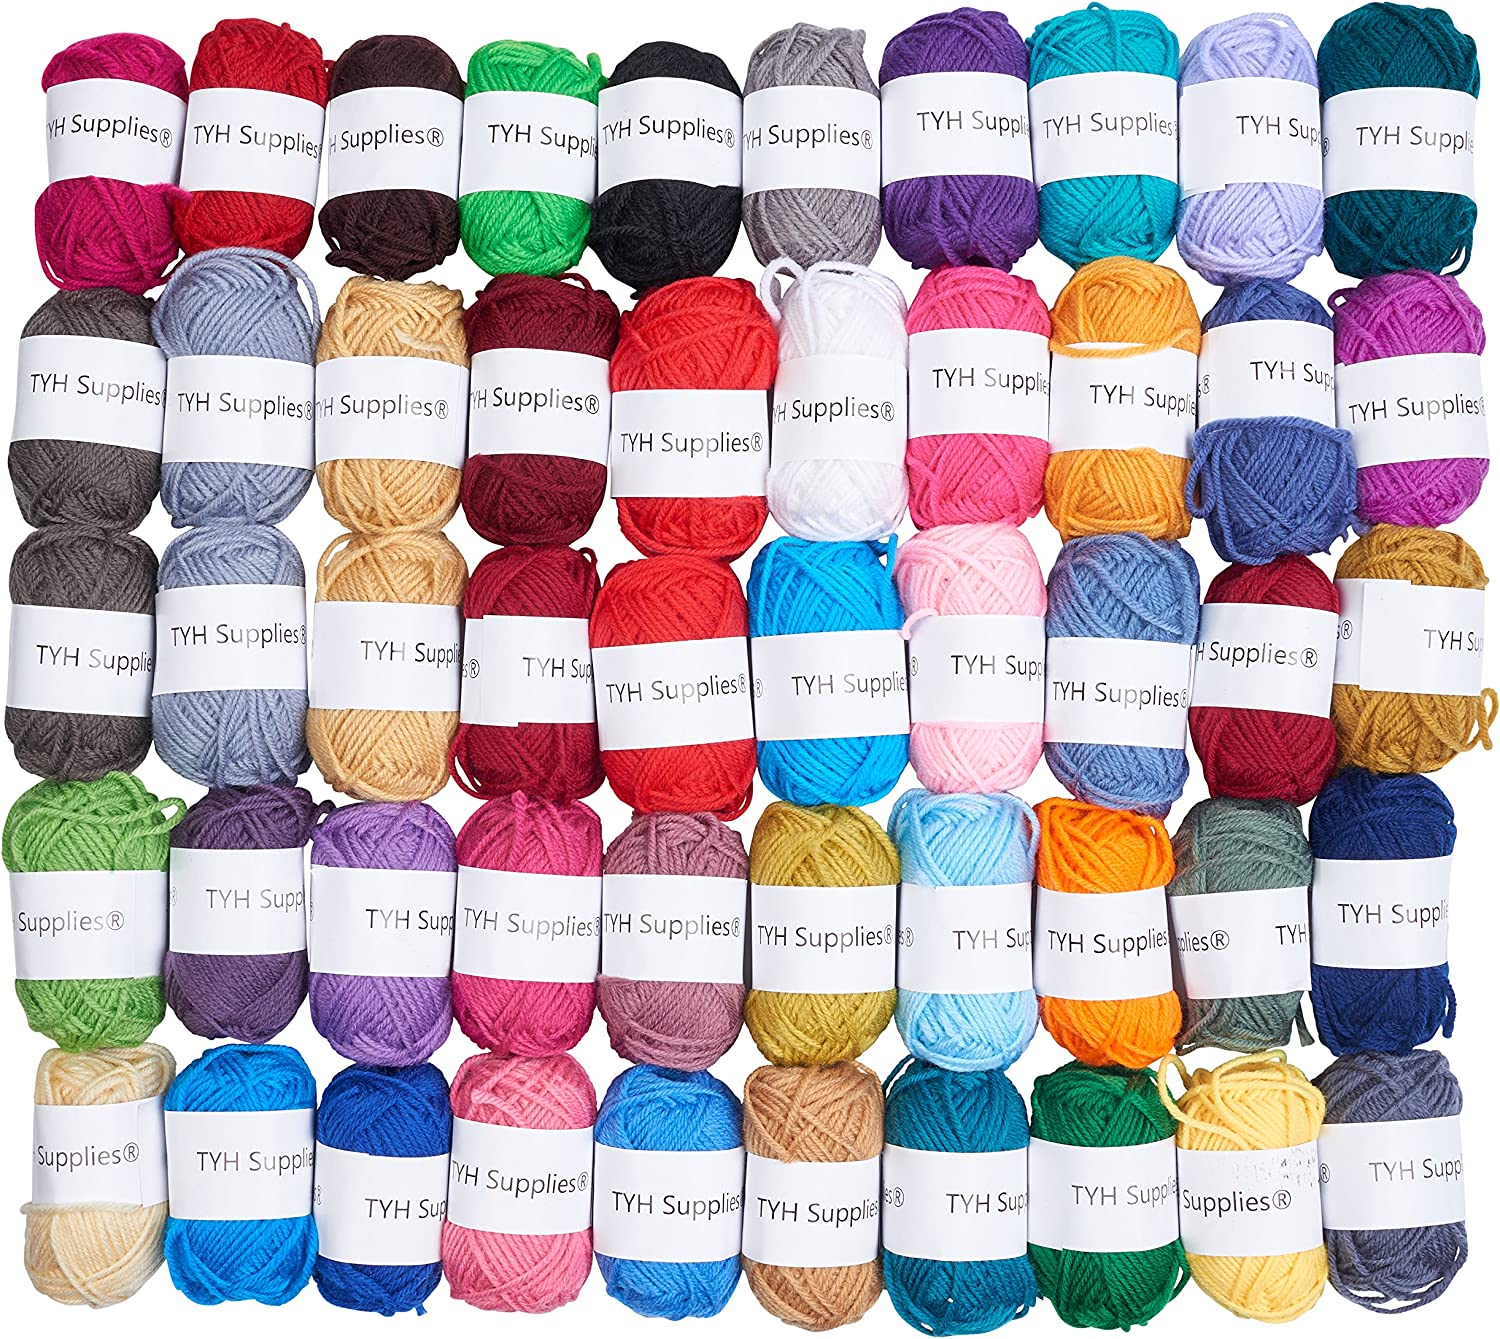 TYH Supplies Acrylic Yarn